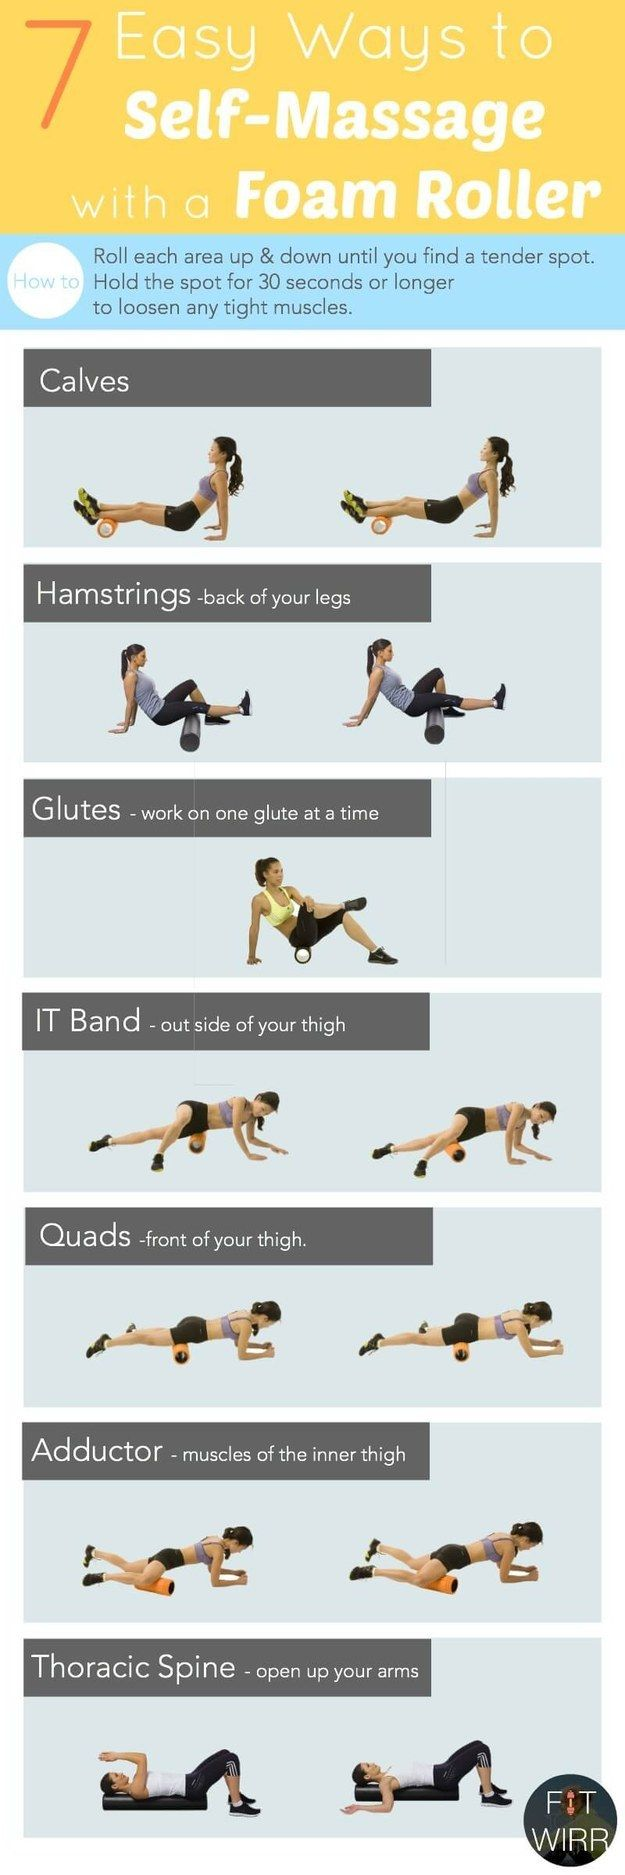 For getting loose and preventing injury. | Easy workouts, Foam roller  exercises, Foam rollerPinterest